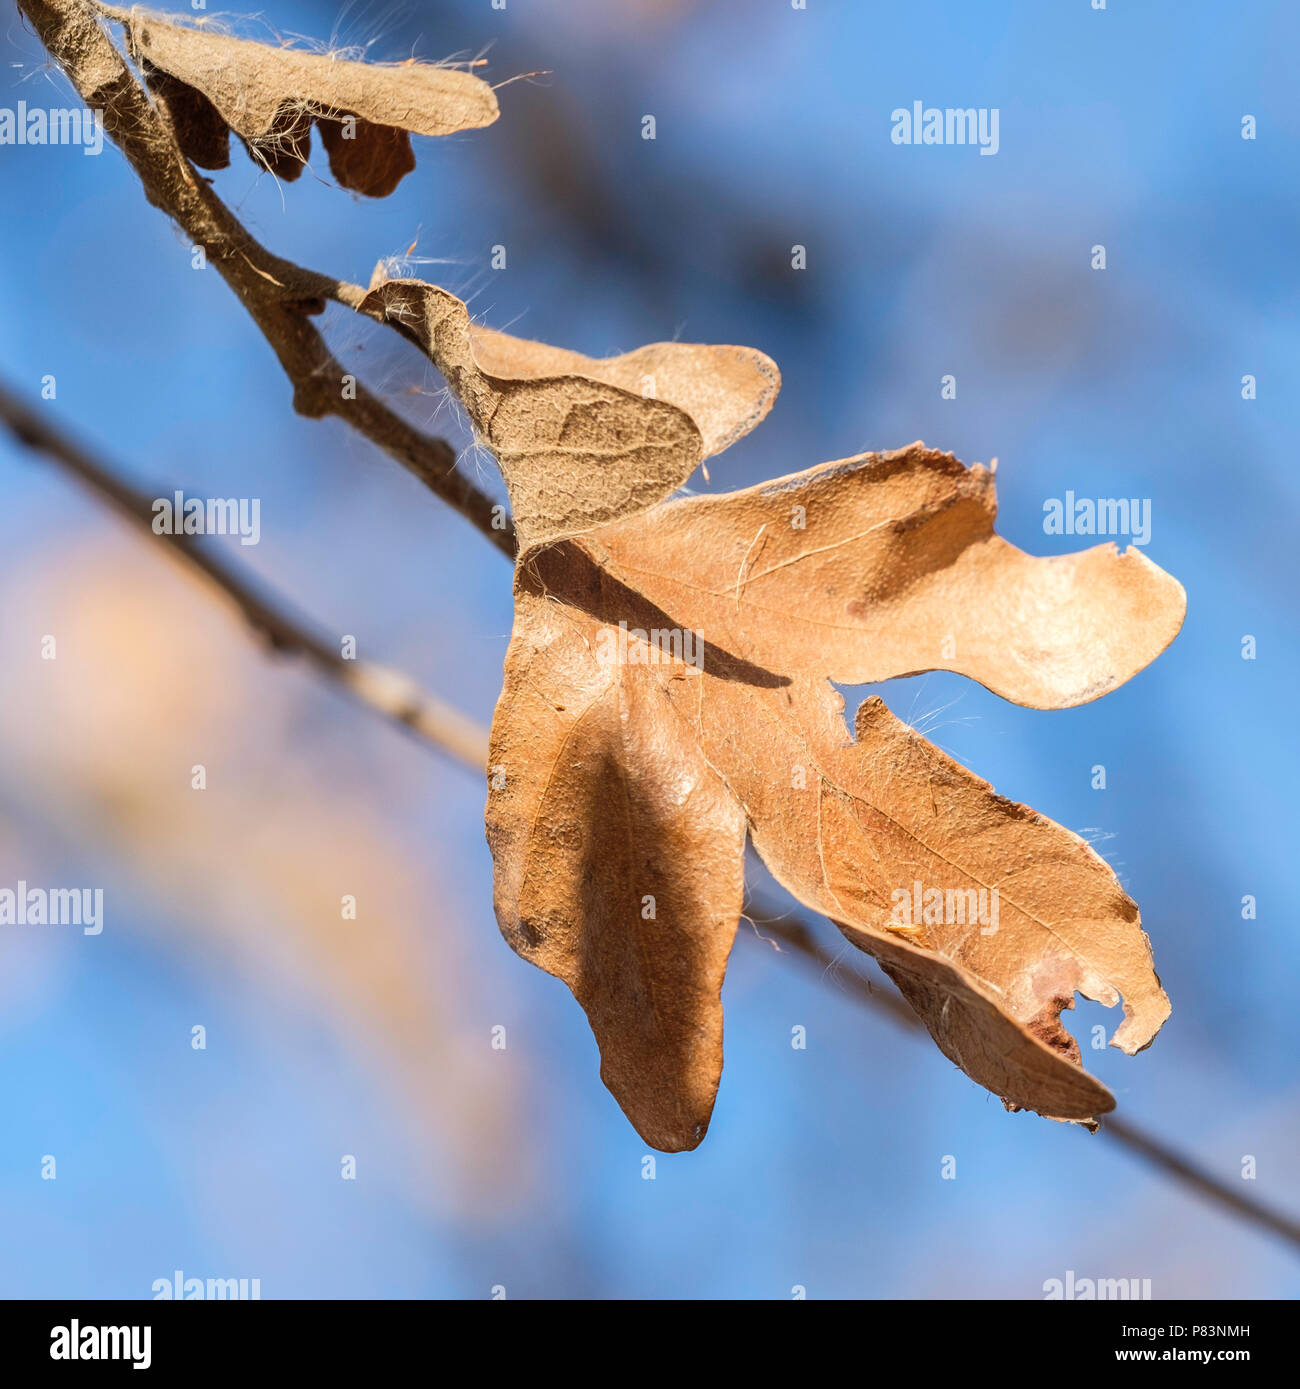 A dead white oak leaf, Quercus alba, after several hard freezes still clinging to a branch. Oklahoma, USA. - Stock Image